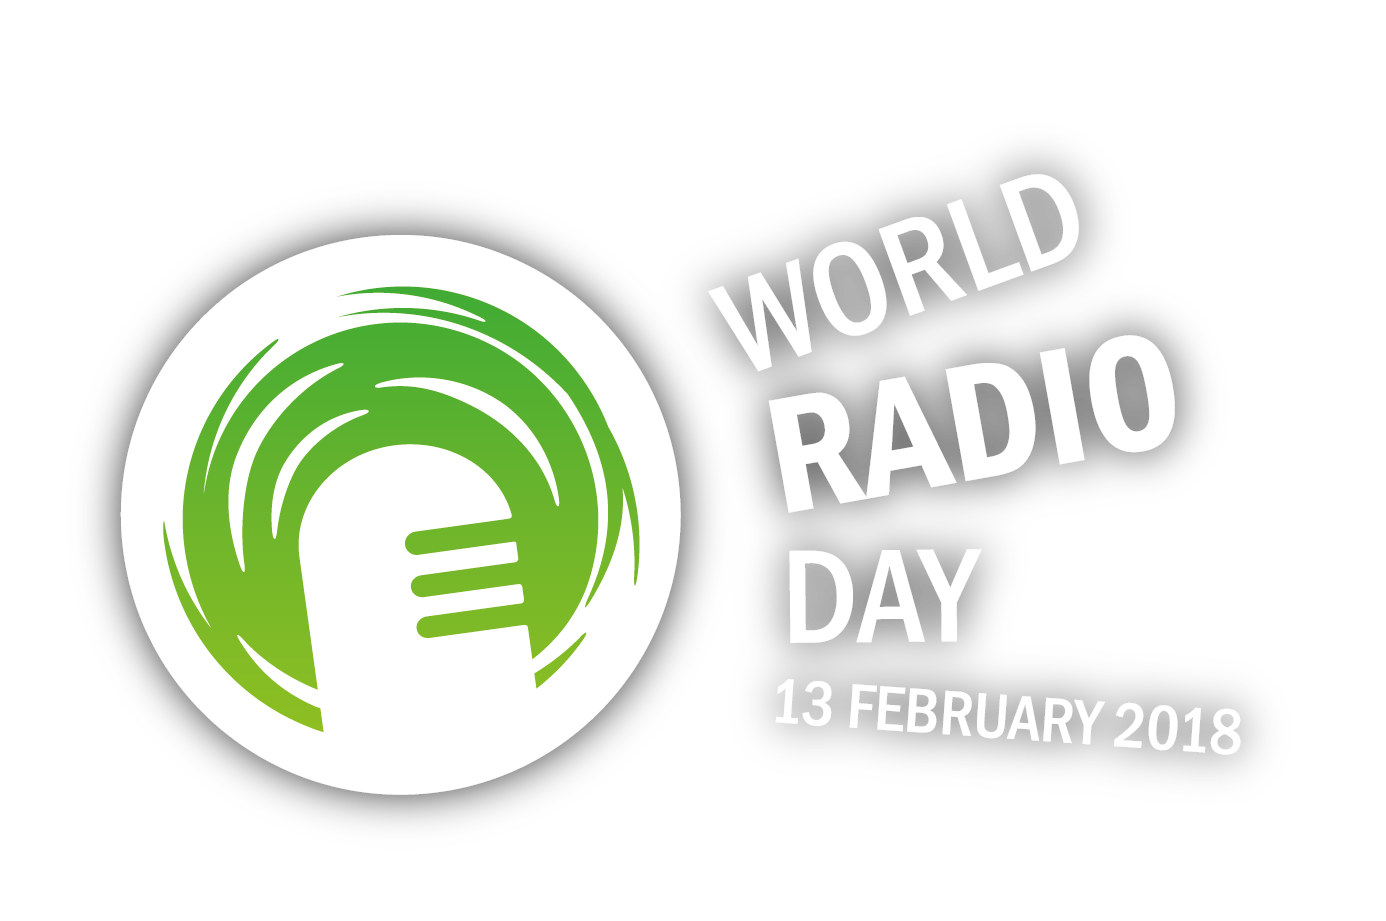 What's happening this week at the UN? #WorldRadioDay and much more. List of events is here: https://t.co/U76dONw7SD https://t.co/w4MFlypIcl